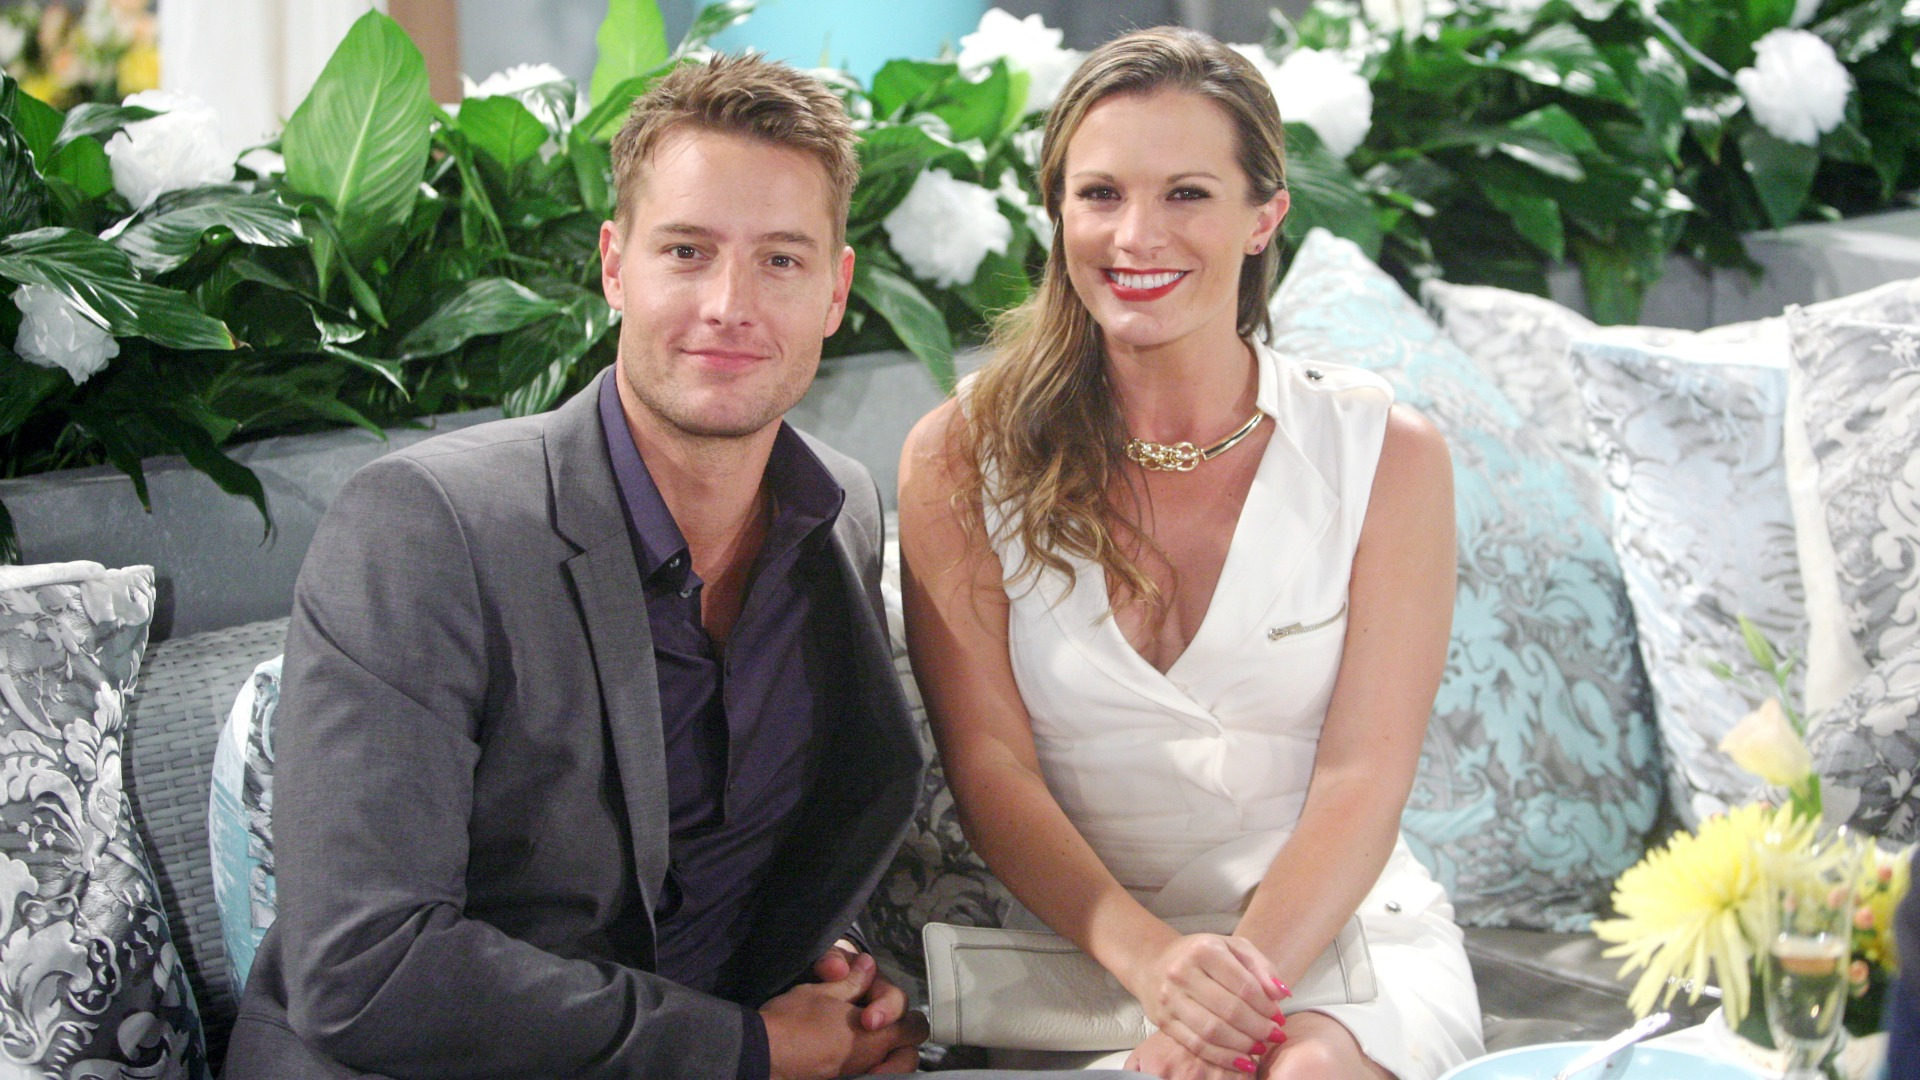 How do you and Melissa Claire Egan prepare for your scenes together?